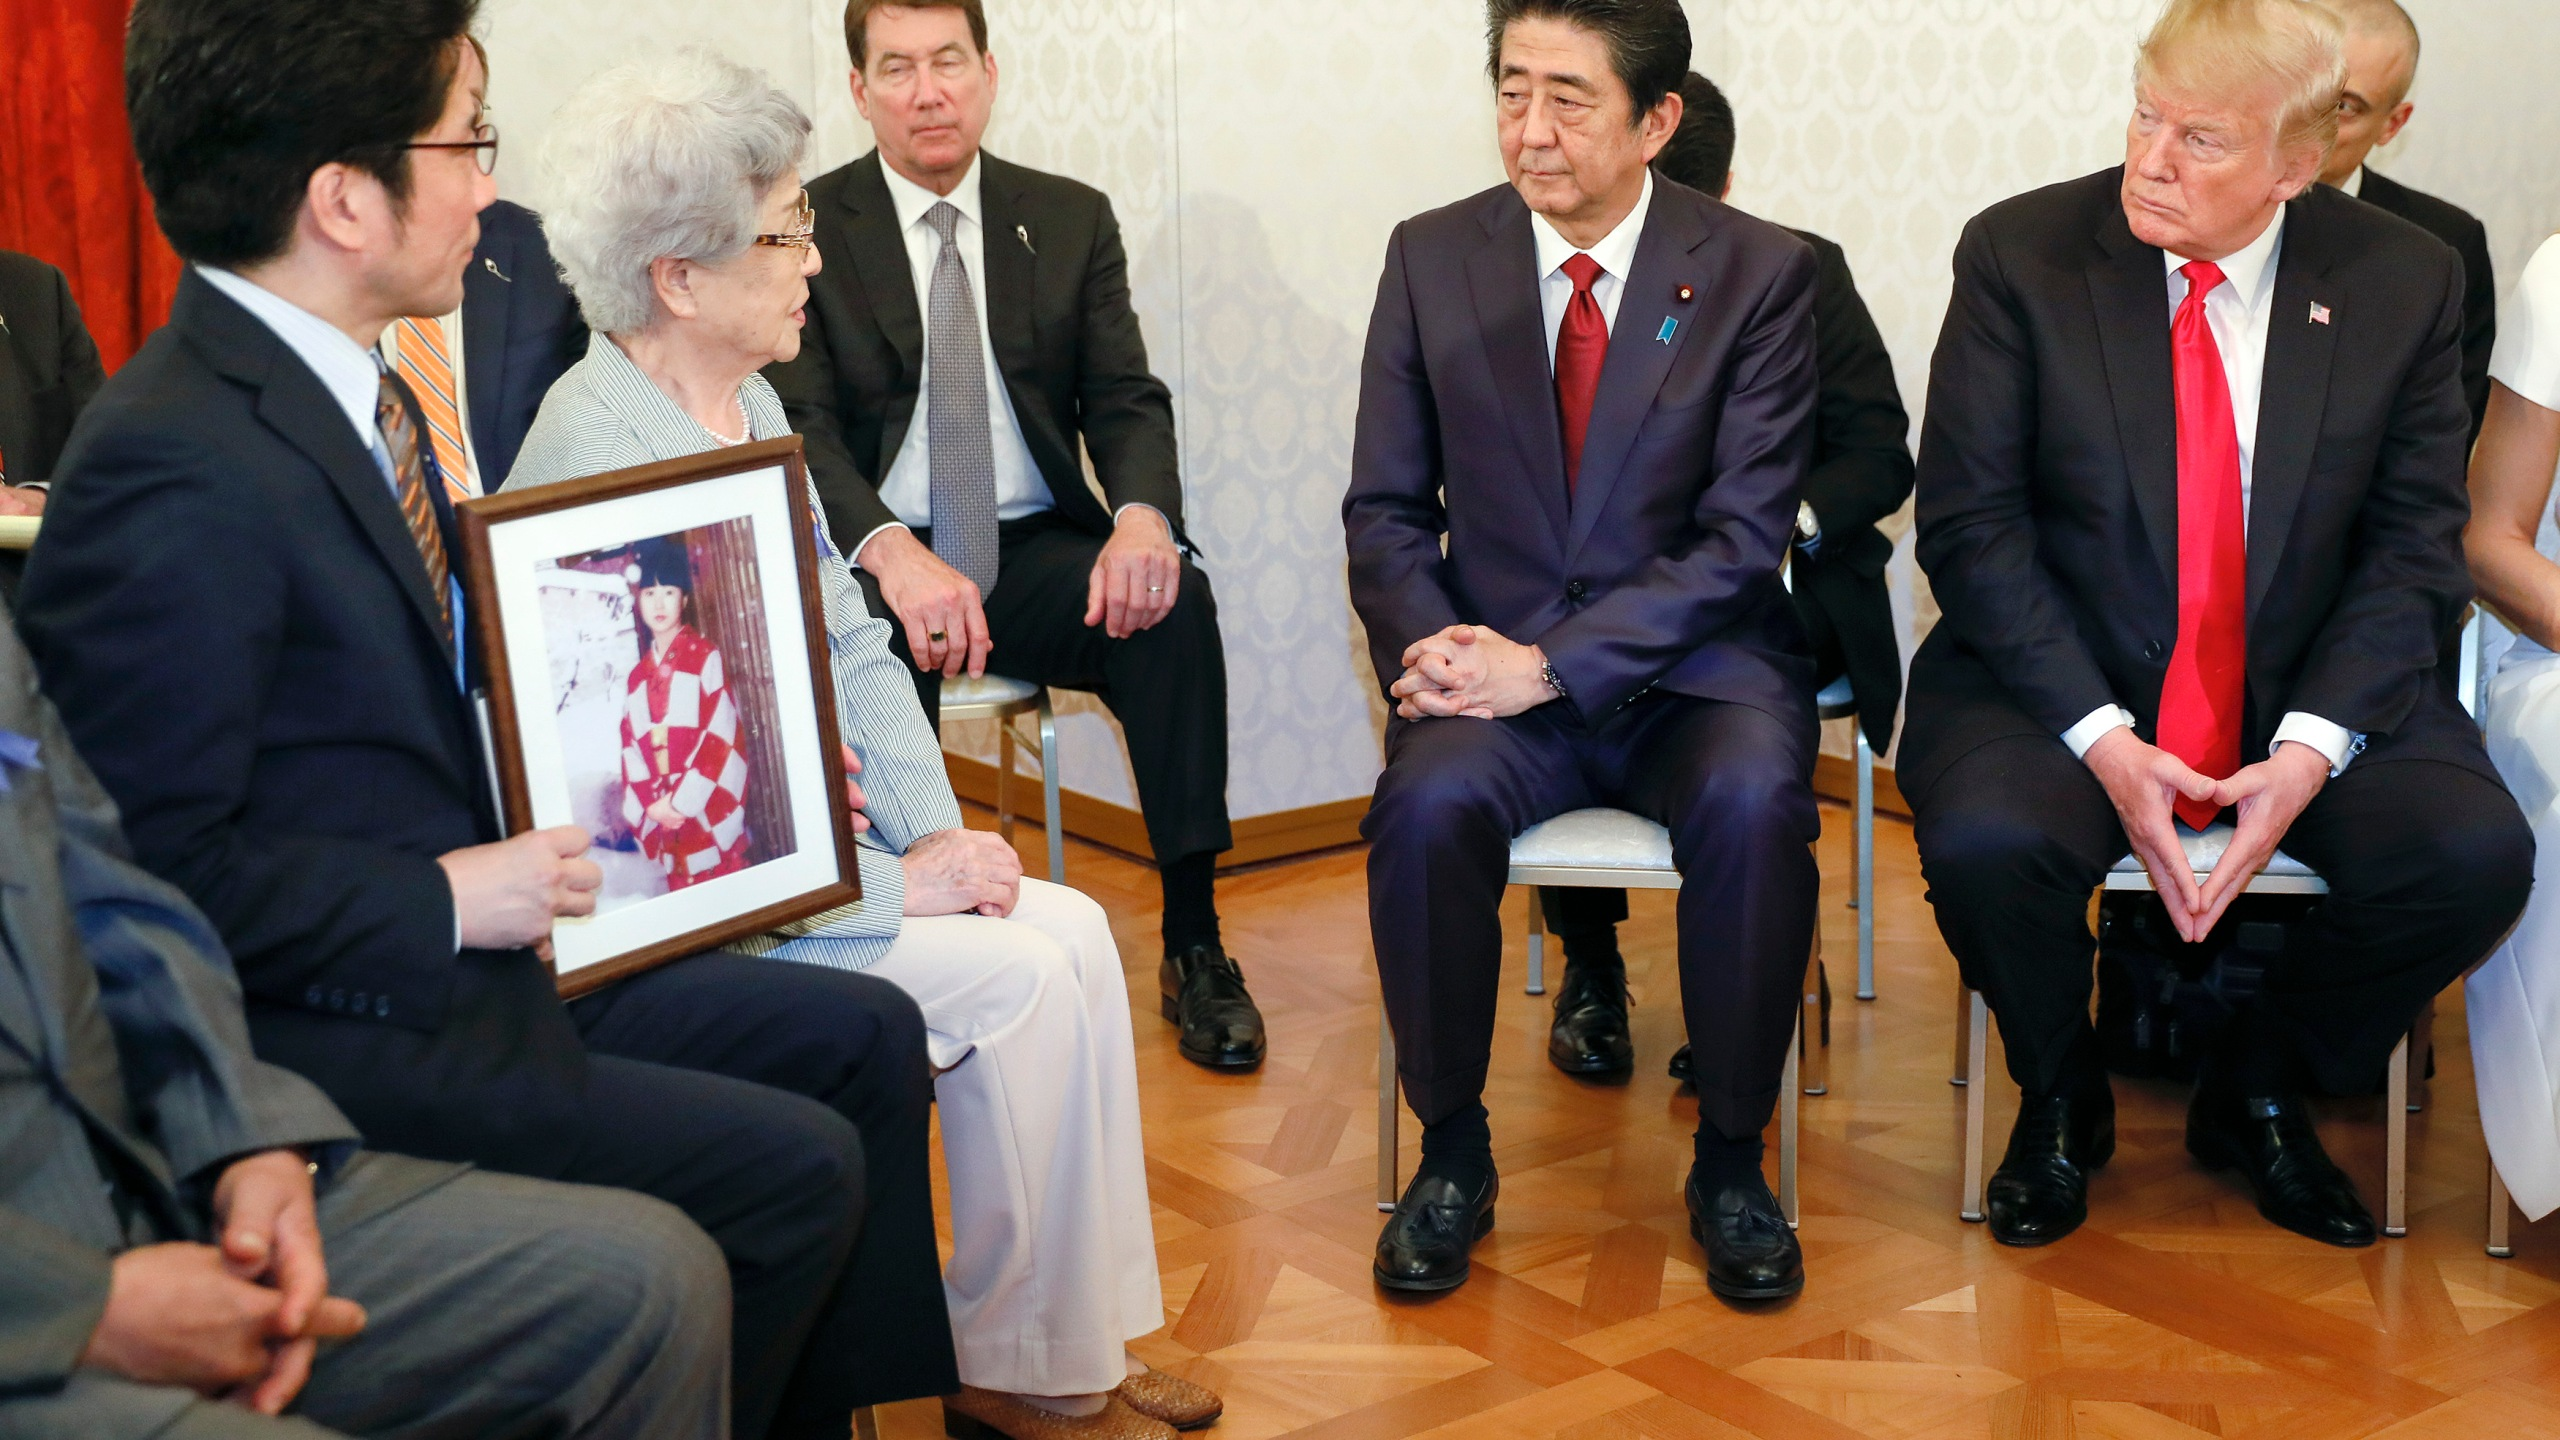 U.S. President Donald Trump listens to Sakie Yokota, mother of Megumi Yokota, who was kidnapped by North Korean agents at the age of 13 in 1977, as he meets the families of Japanese abductees by North Korea with Japanese Prime Minister Shinzo Abe (2-R) at Akasaka State Guesthouse on May 27, 2019, in Tokyo, Japan. (Credit: Kimimasa Mayama - Pool/Getty Images)